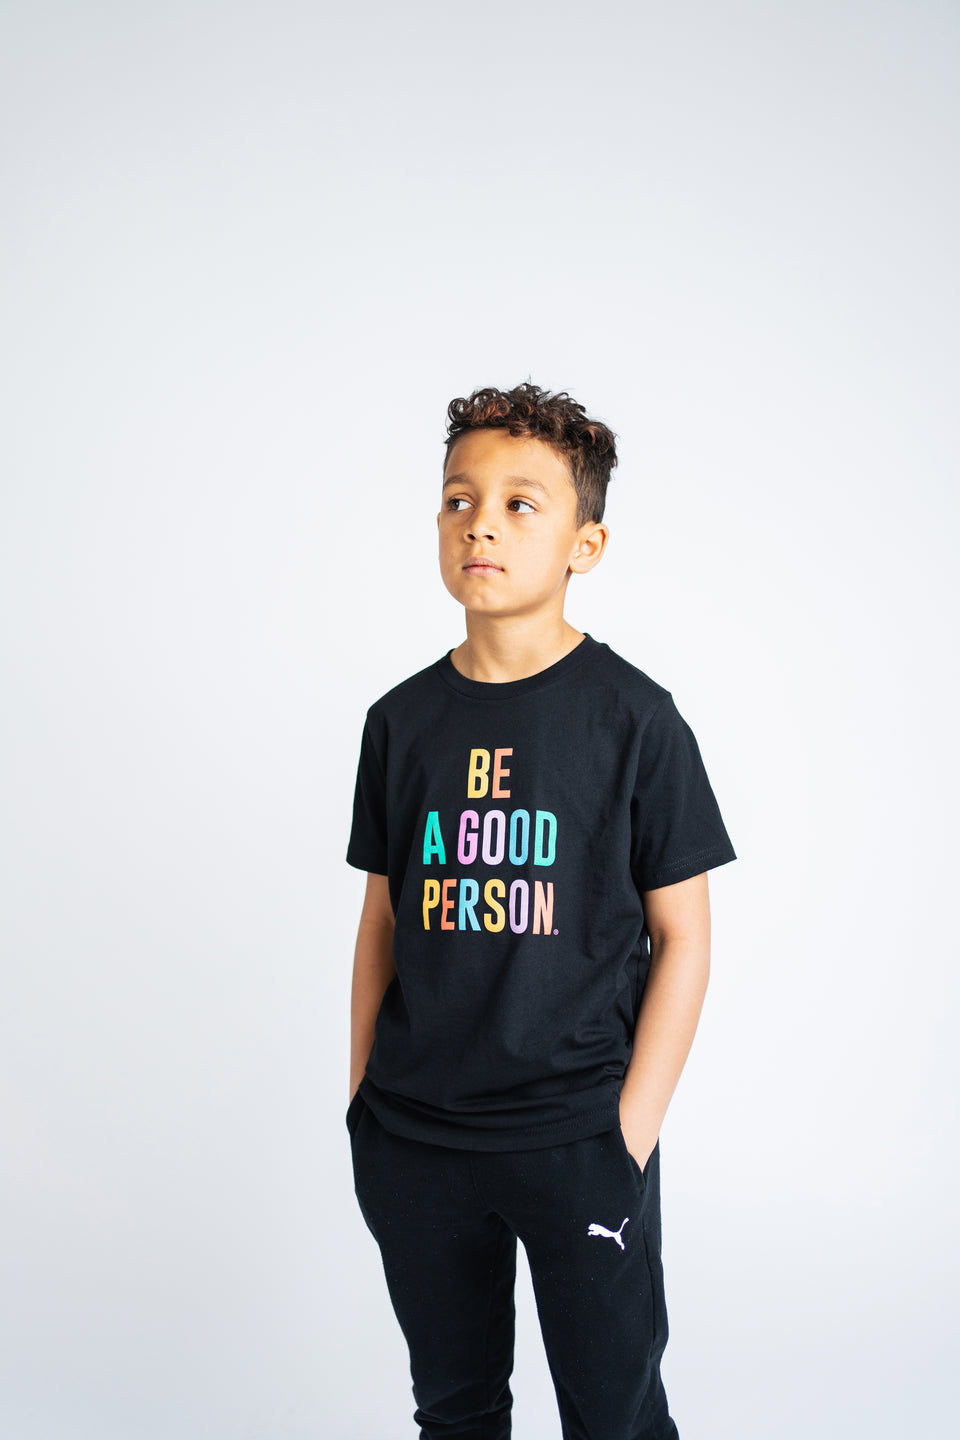 Black Color Spectrum Youth Shirt - Unisex